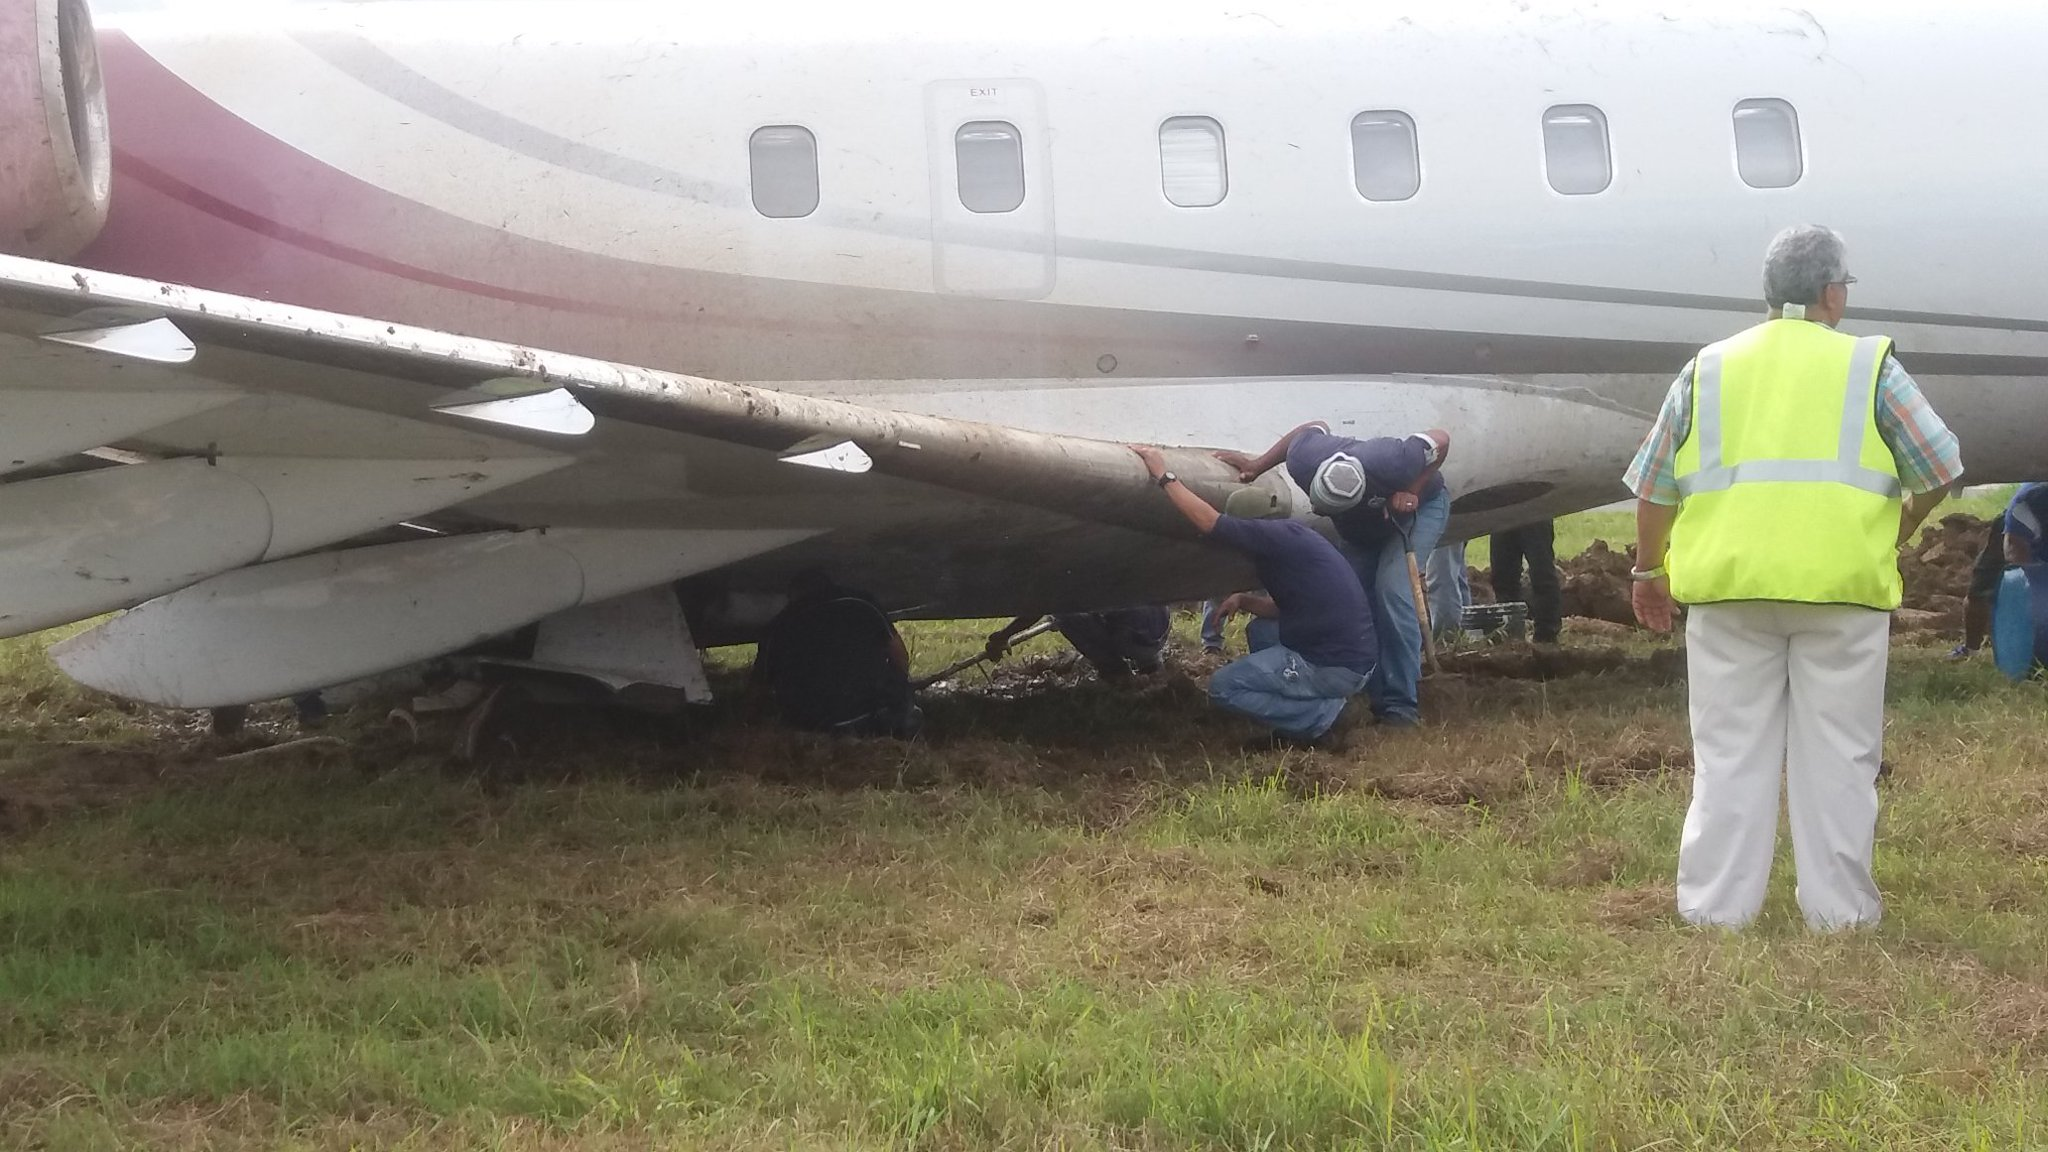 Image shows airport workers attempting extricate a Bombardier jet that skidded off the runway while landing at Albrook airport in Panama City.